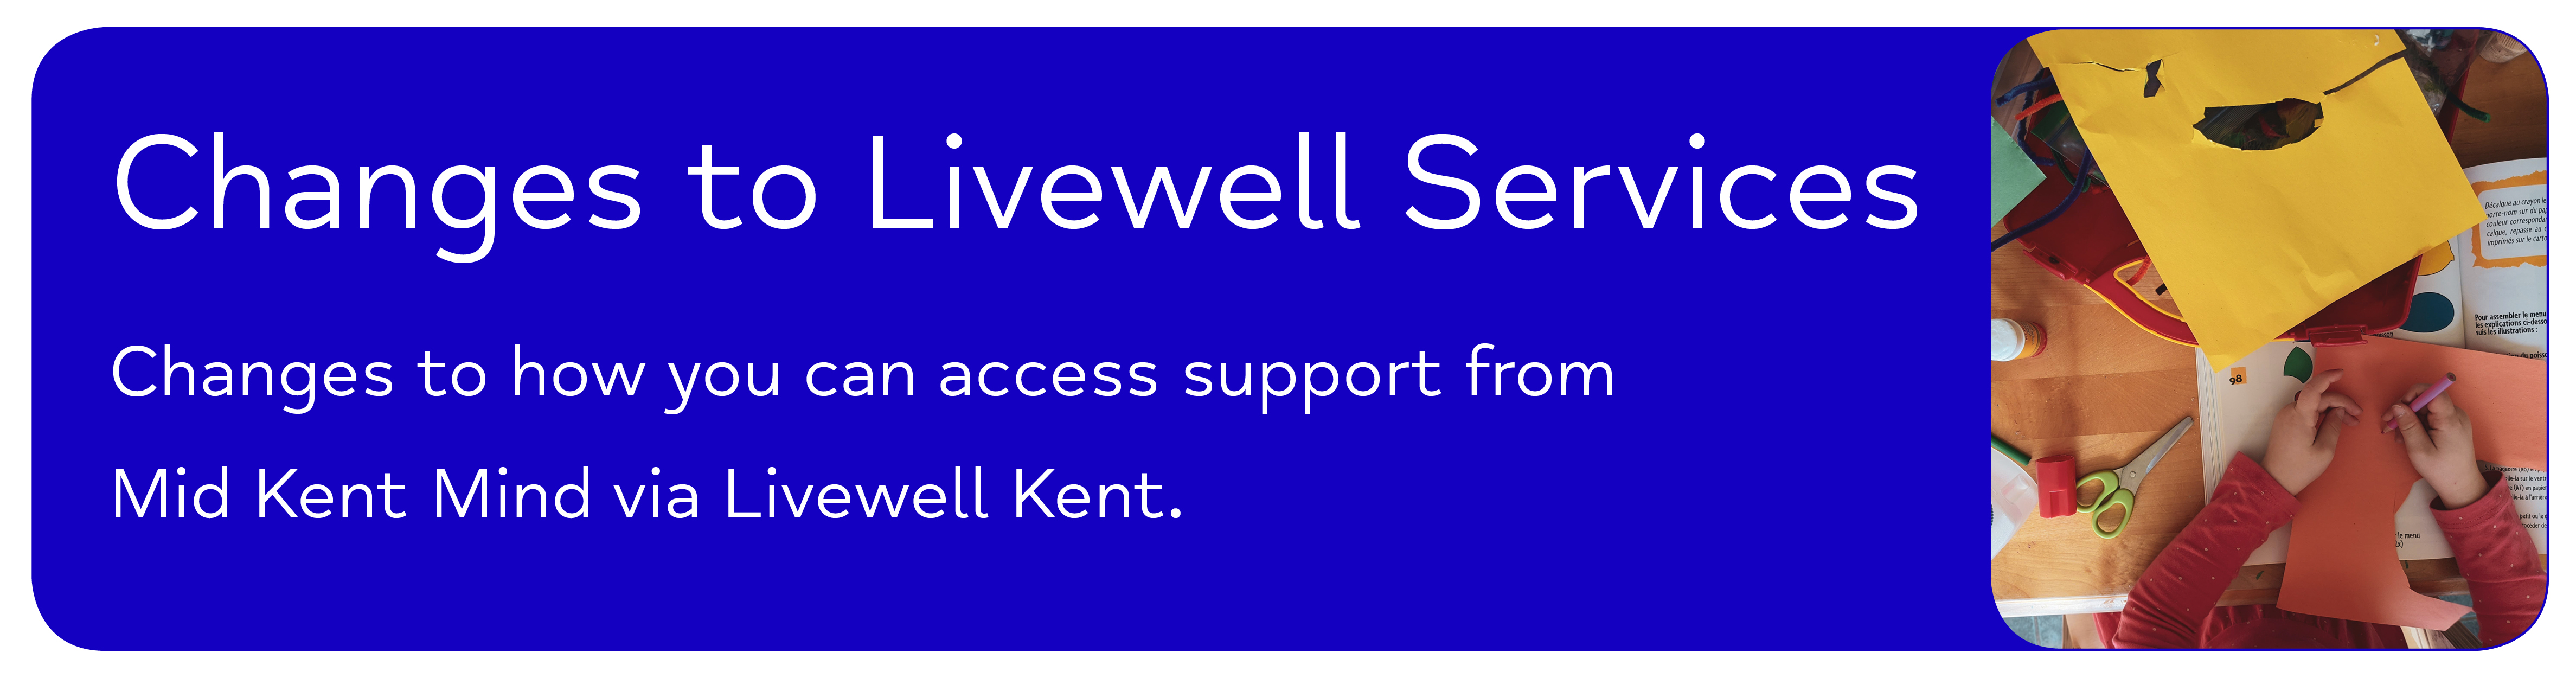 Changes to Livewell Services - Changes to how you can access support from Mid Kent Mind via Livewell Kent.